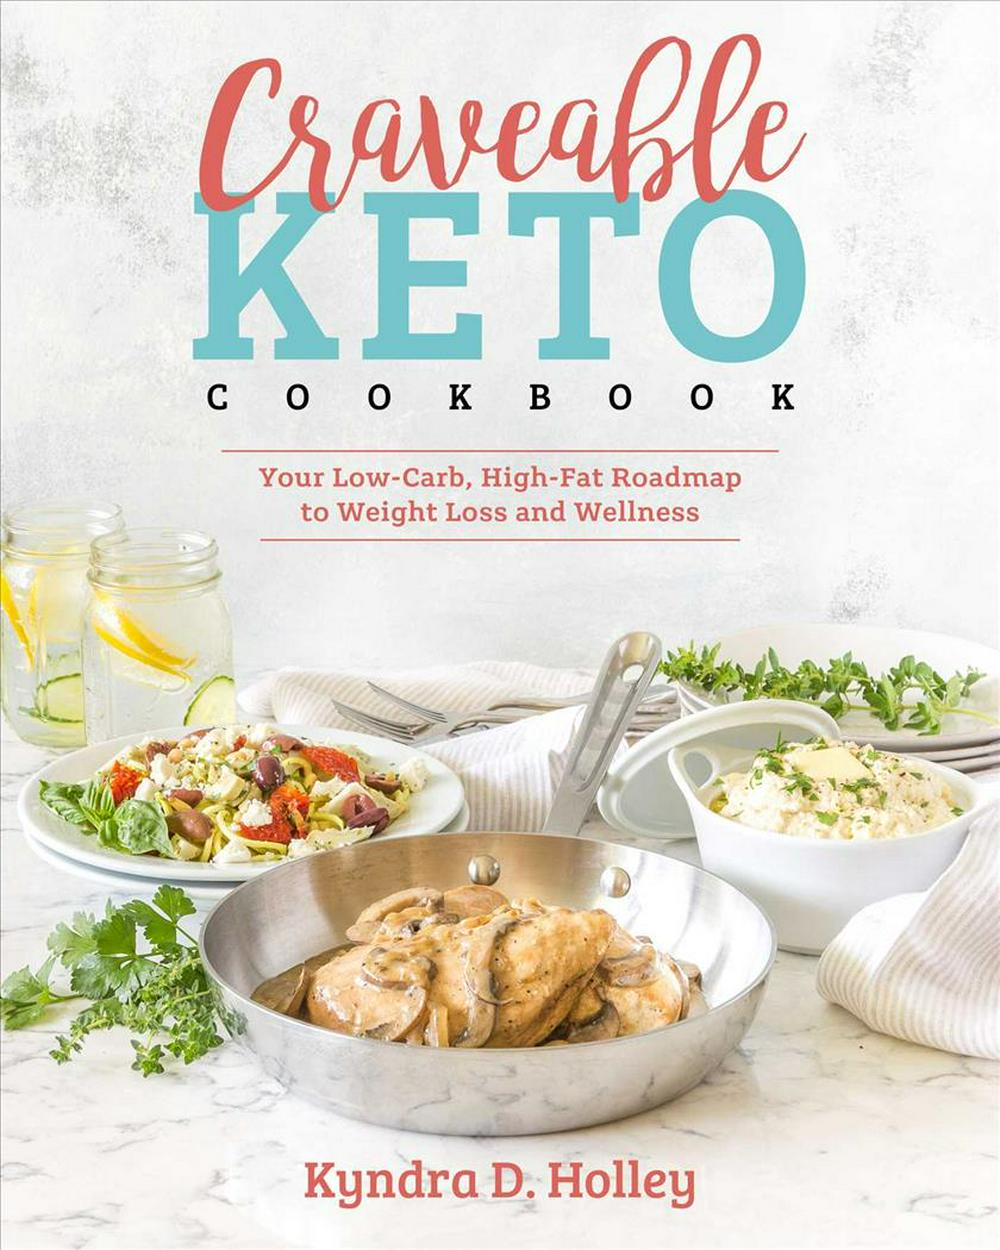 Craveable KetoYour Low-carb, High-fat Roadmap to Weight Loss ... by Kyndra Holley, ISBN: 9781628602715